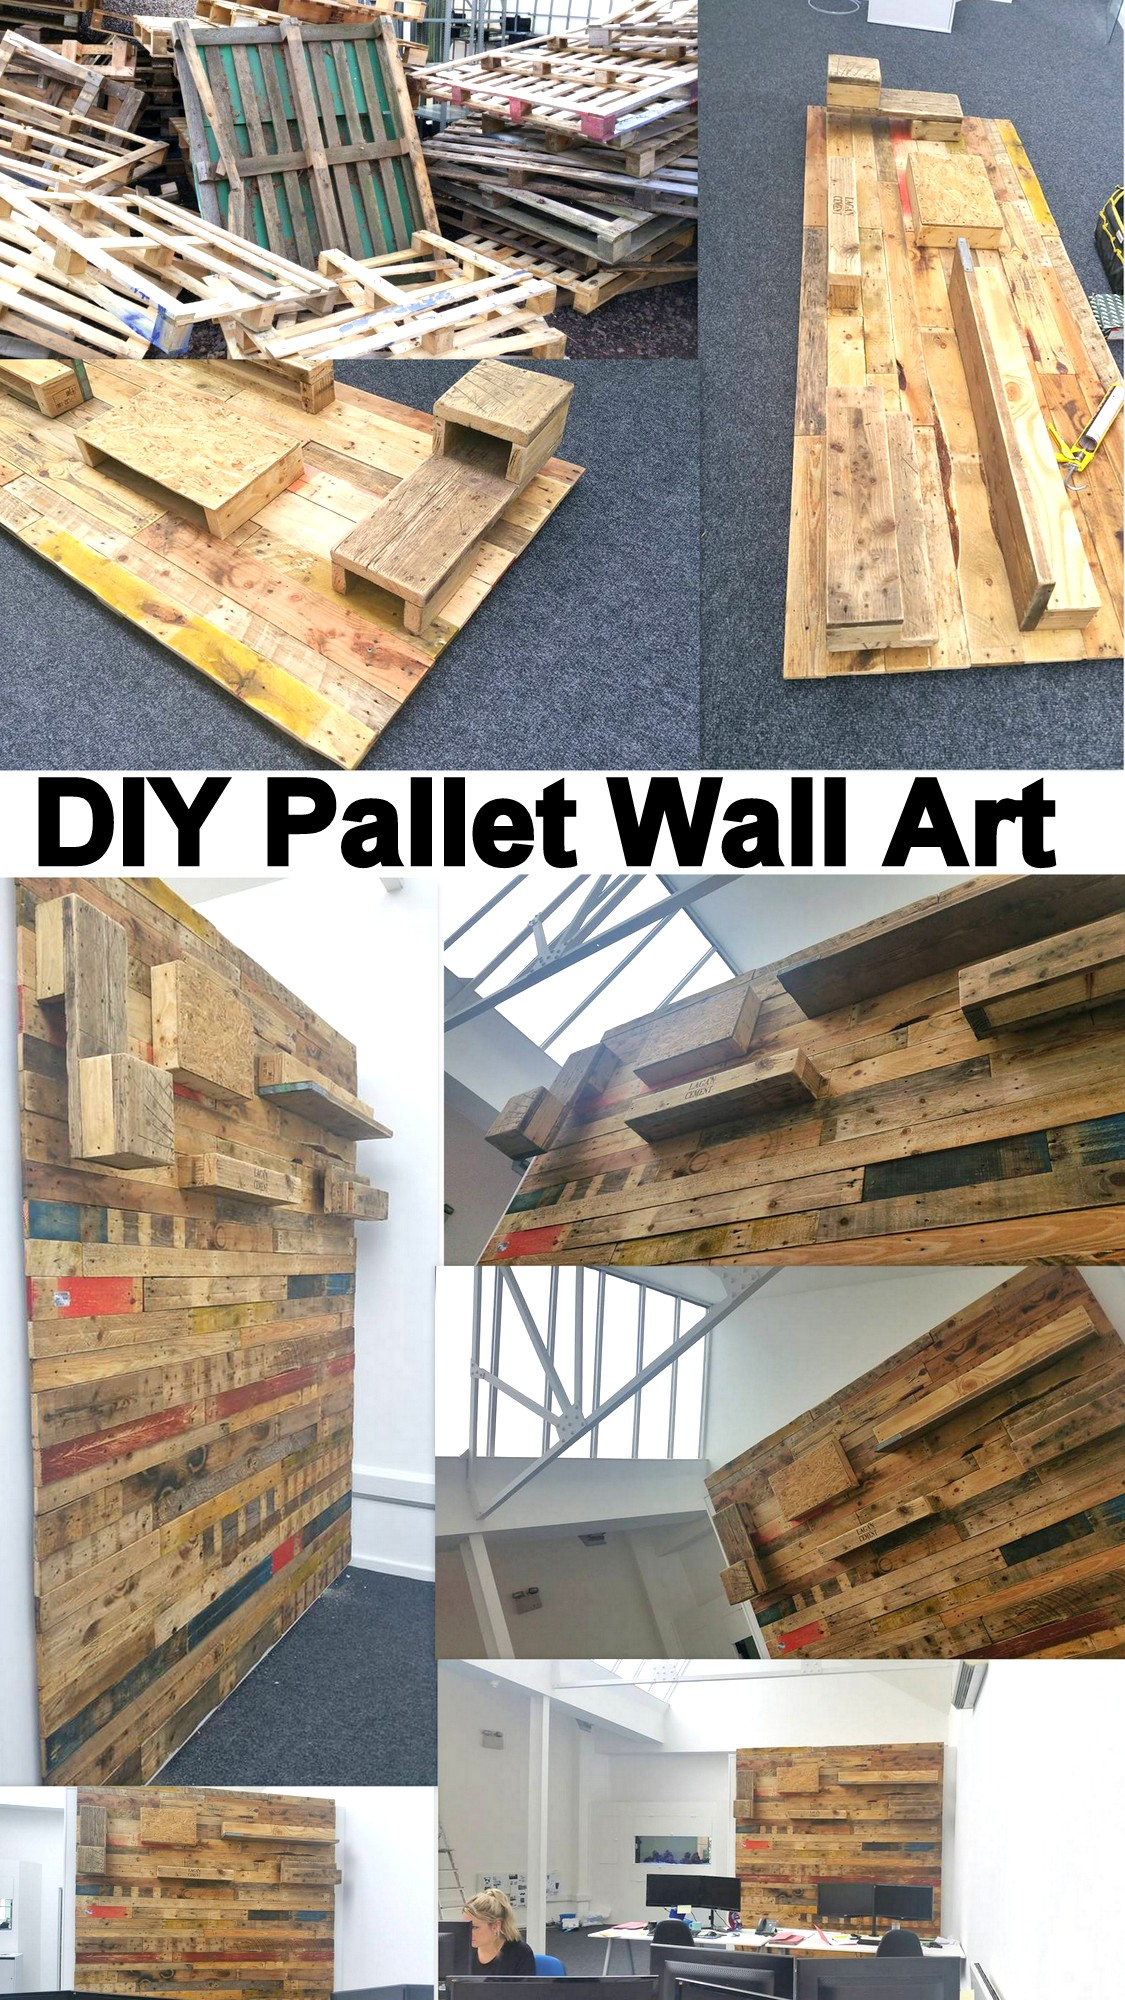 diy pallet wall art pallet furniture projects. Black Bedroom Furniture Sets. Home Design Ideas